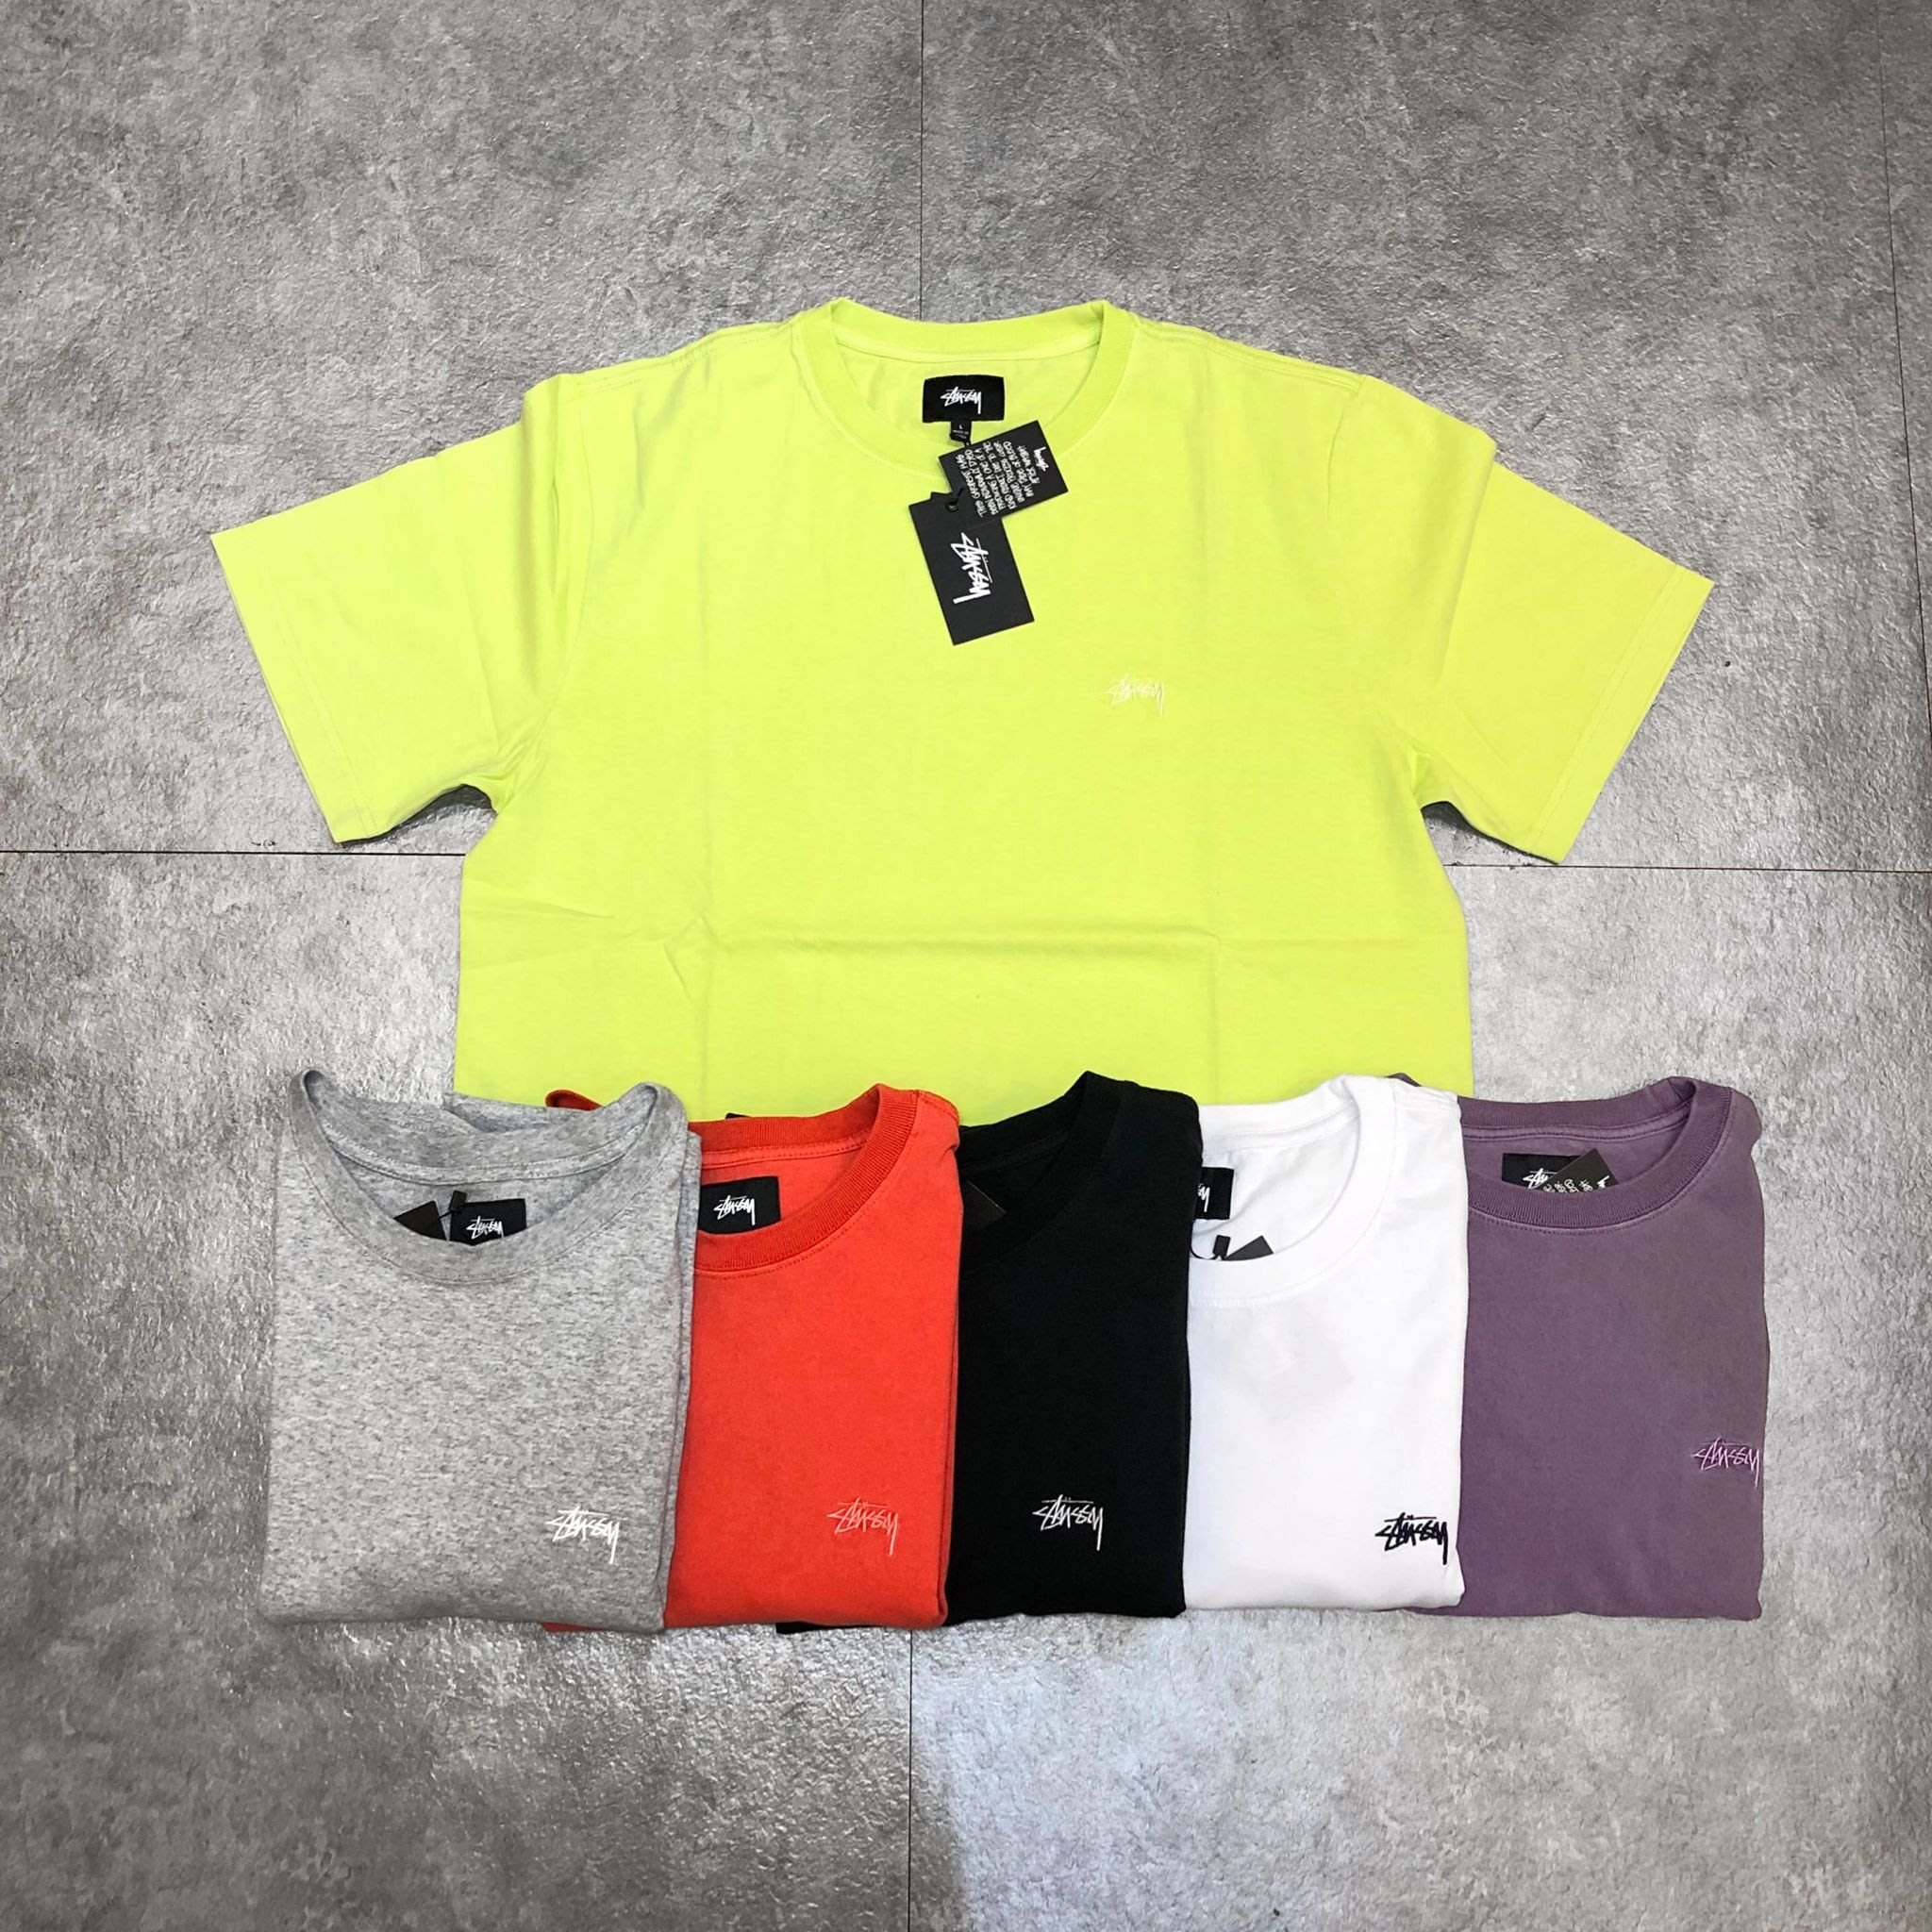 【Faithful】STUSSY STOCK S/SL CREW【1140137】 刺繡短T 6色